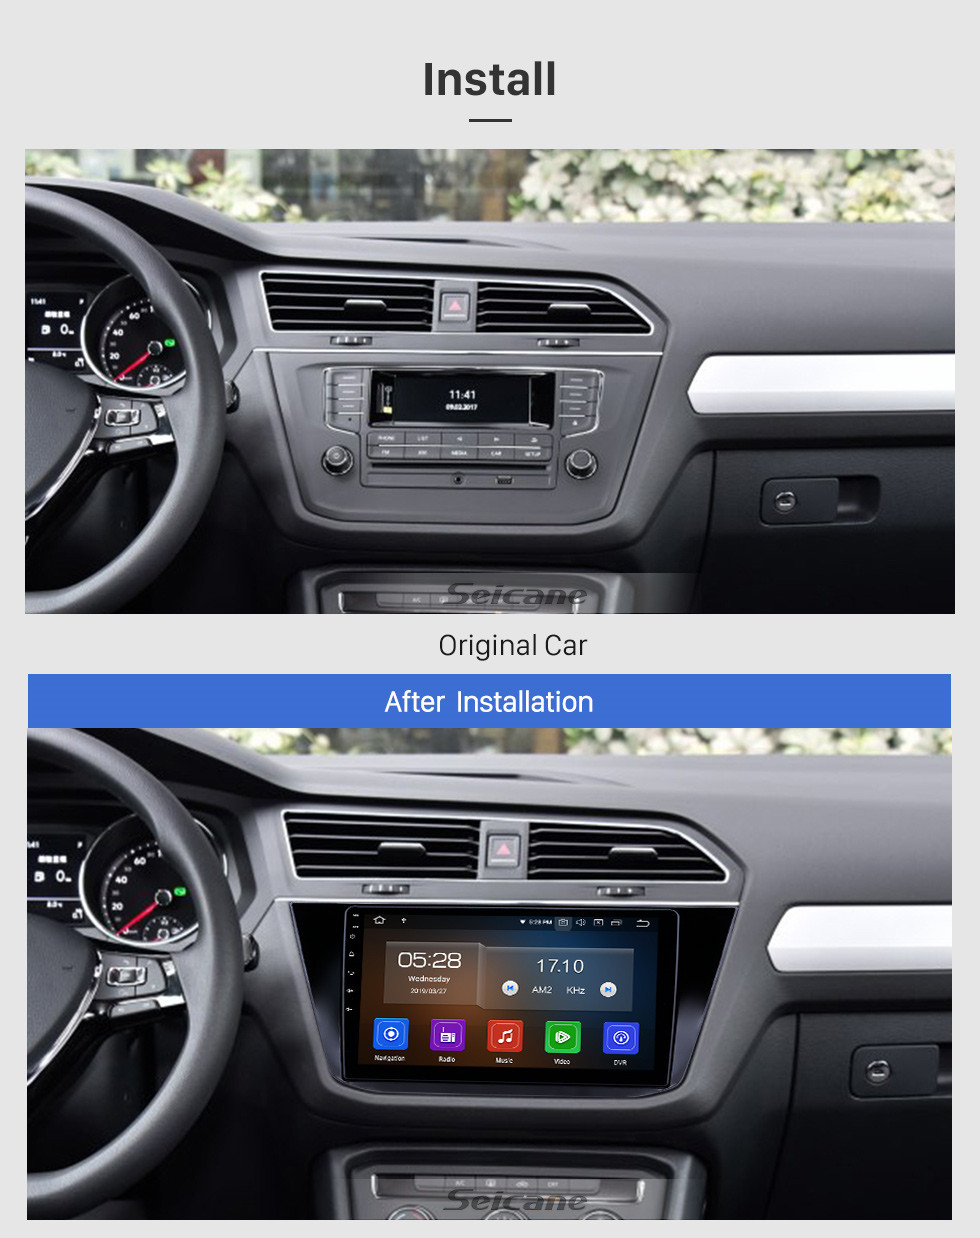 Seicane 10.1 inch Android 9.0 Radio for 2016-2018 VW Volkswagen Tiguan Bluetooth HD Touchscreen GPS Navigation Carplay USB support TPMS DAB+ DVR